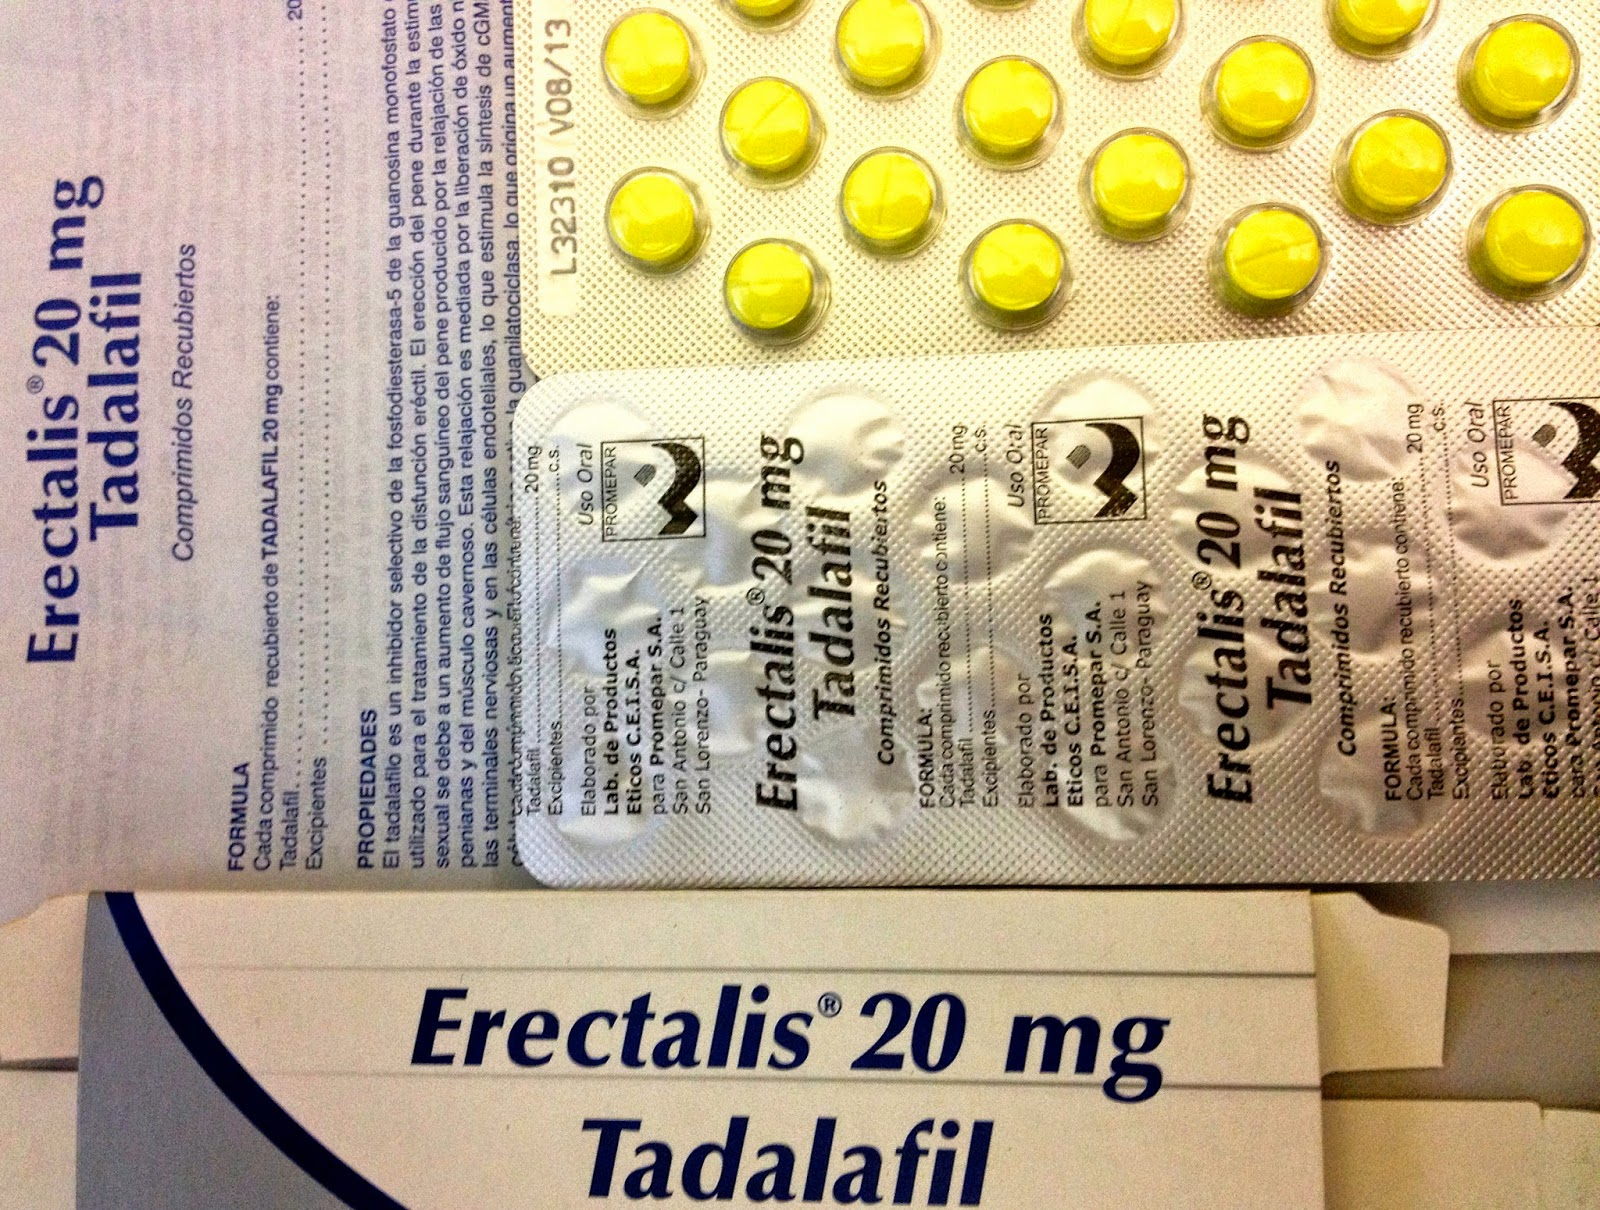 Is tadalafil the same as cialis